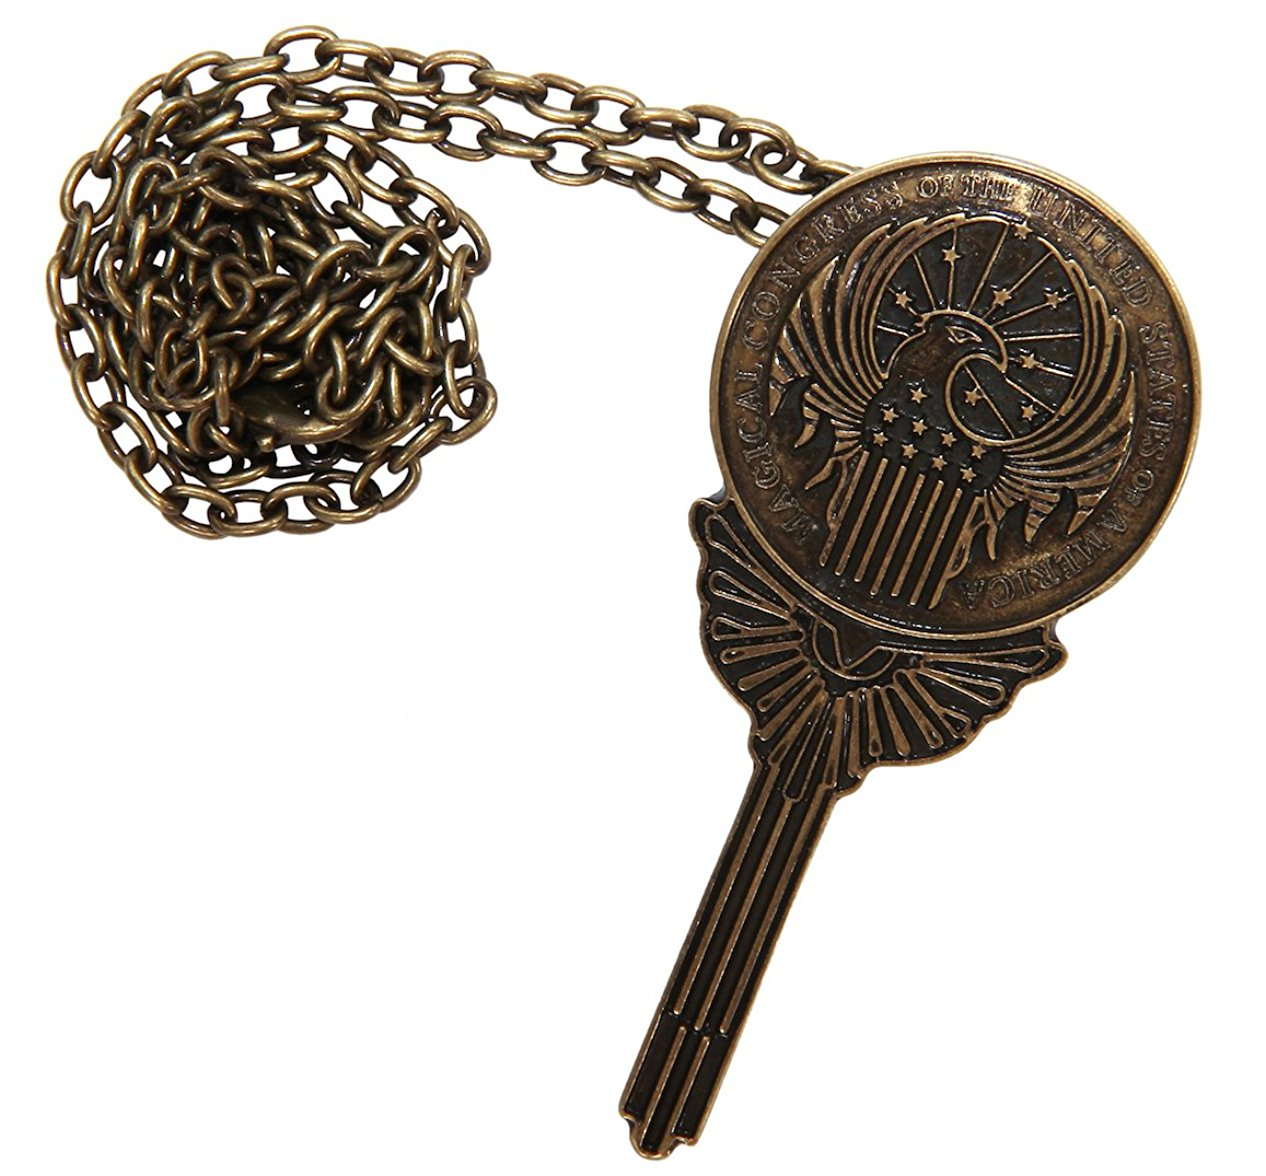 Fantastic Beasts MACUSA Costume Pin Pendant with Chain